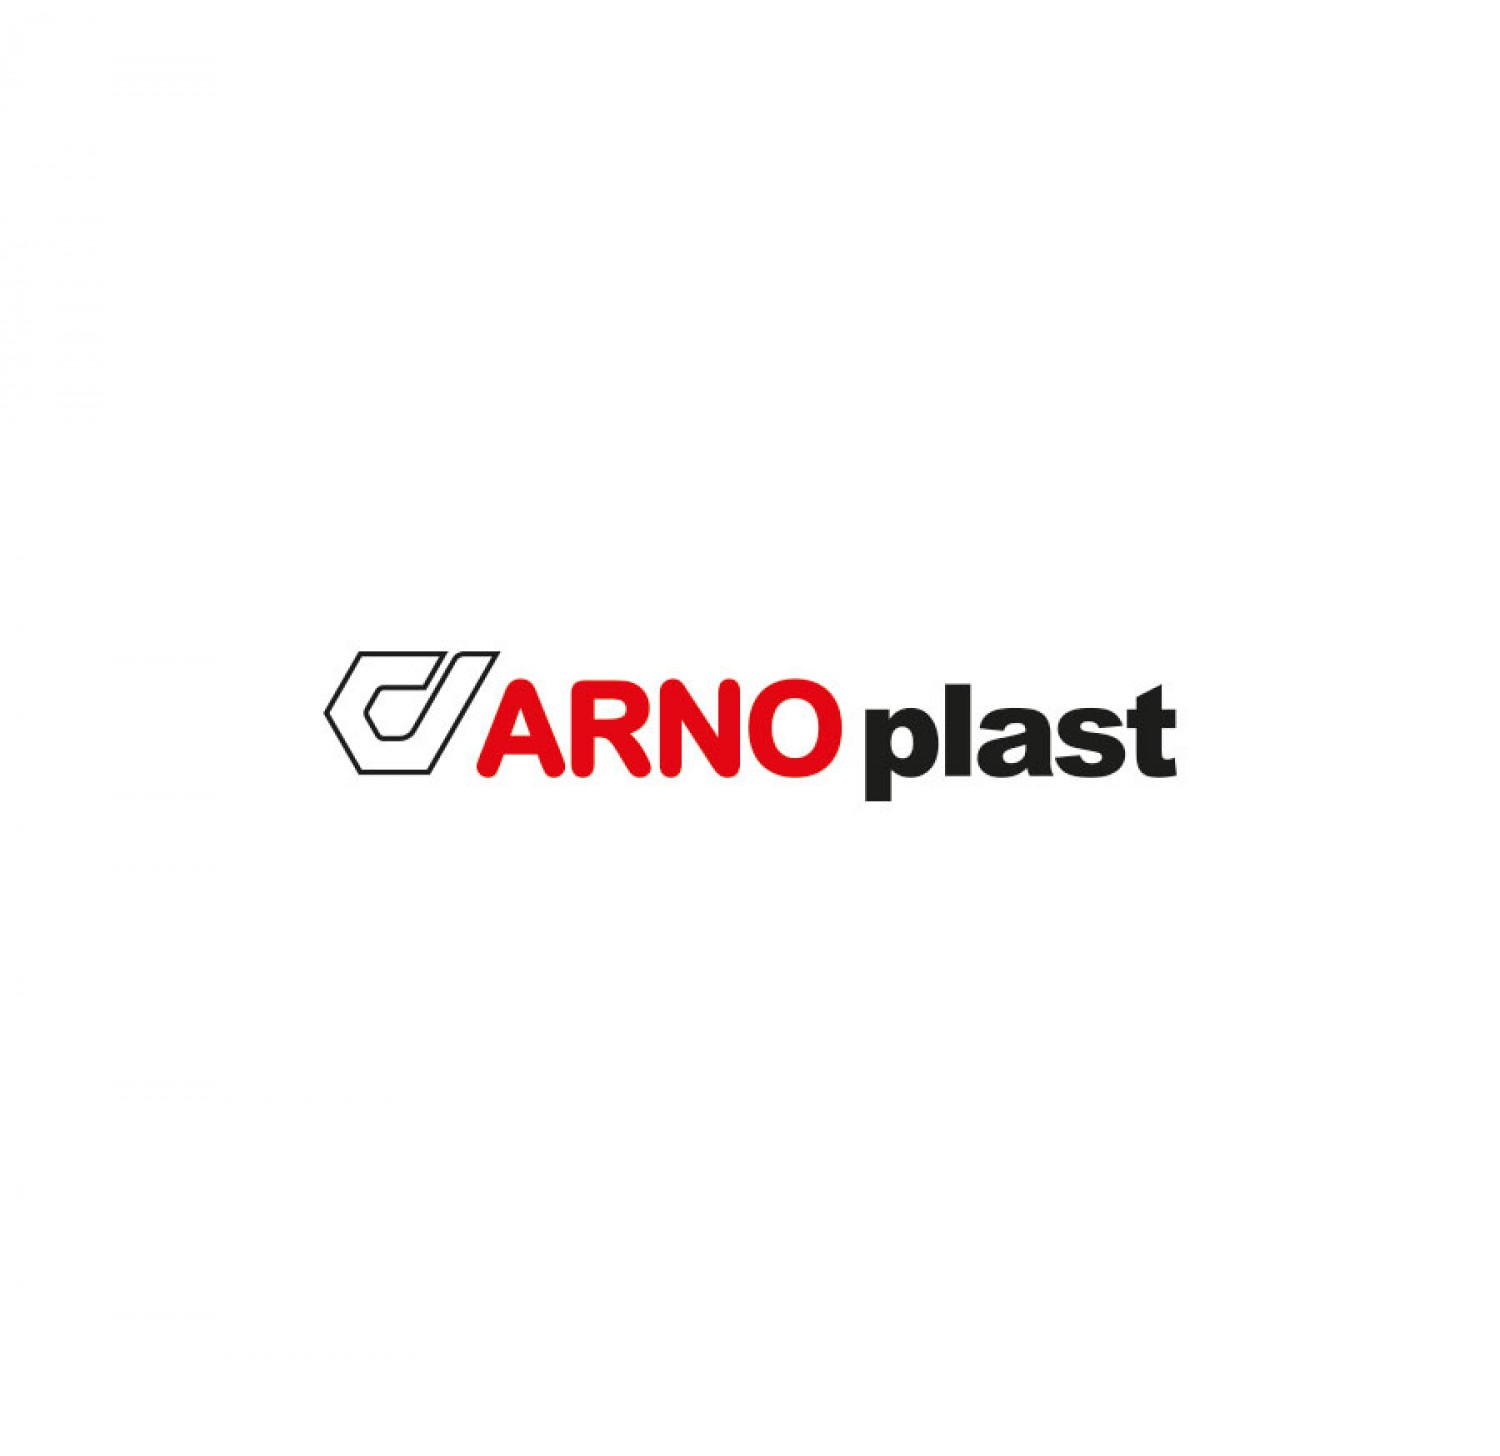 Range expanded with Arnoplast materials